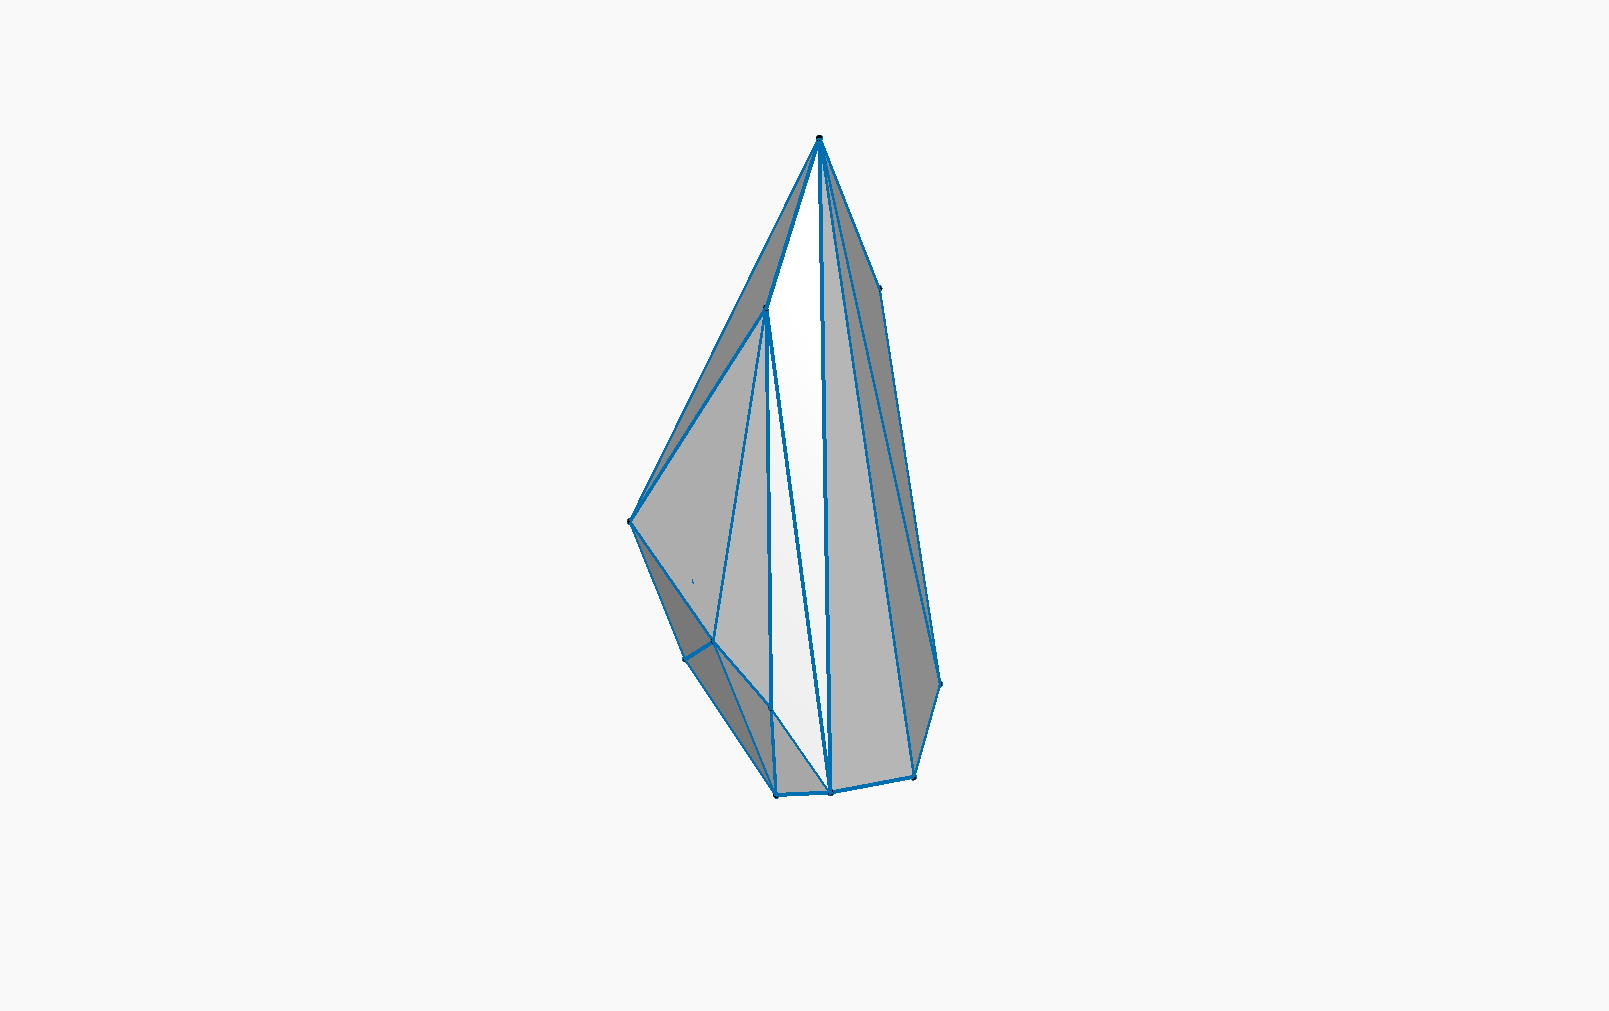 ConvexHull_Solid_2021-08-27_03-51-30